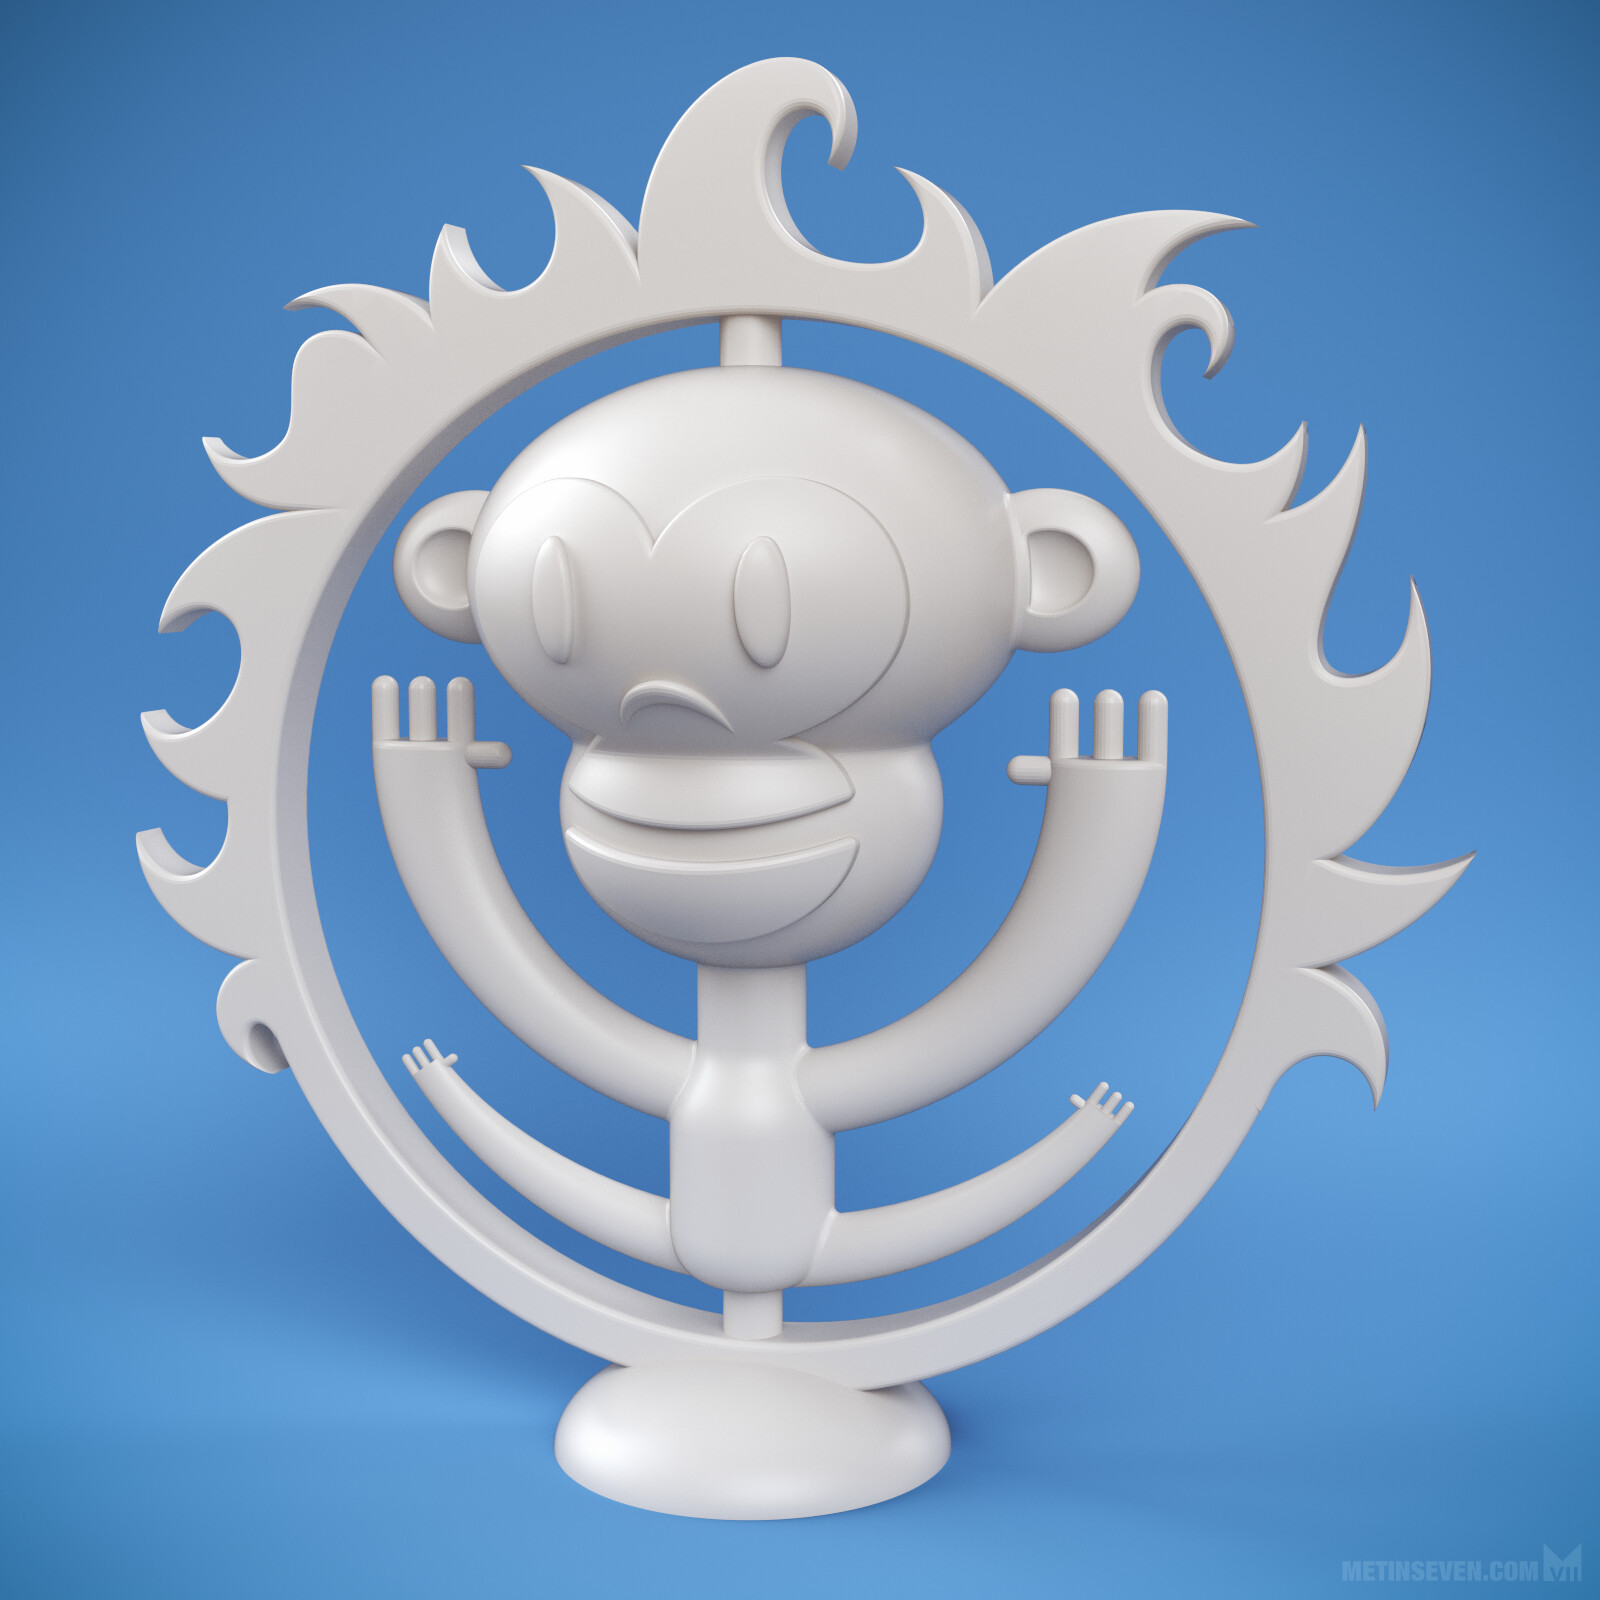 3D-printed award design, derived from the customer's logo